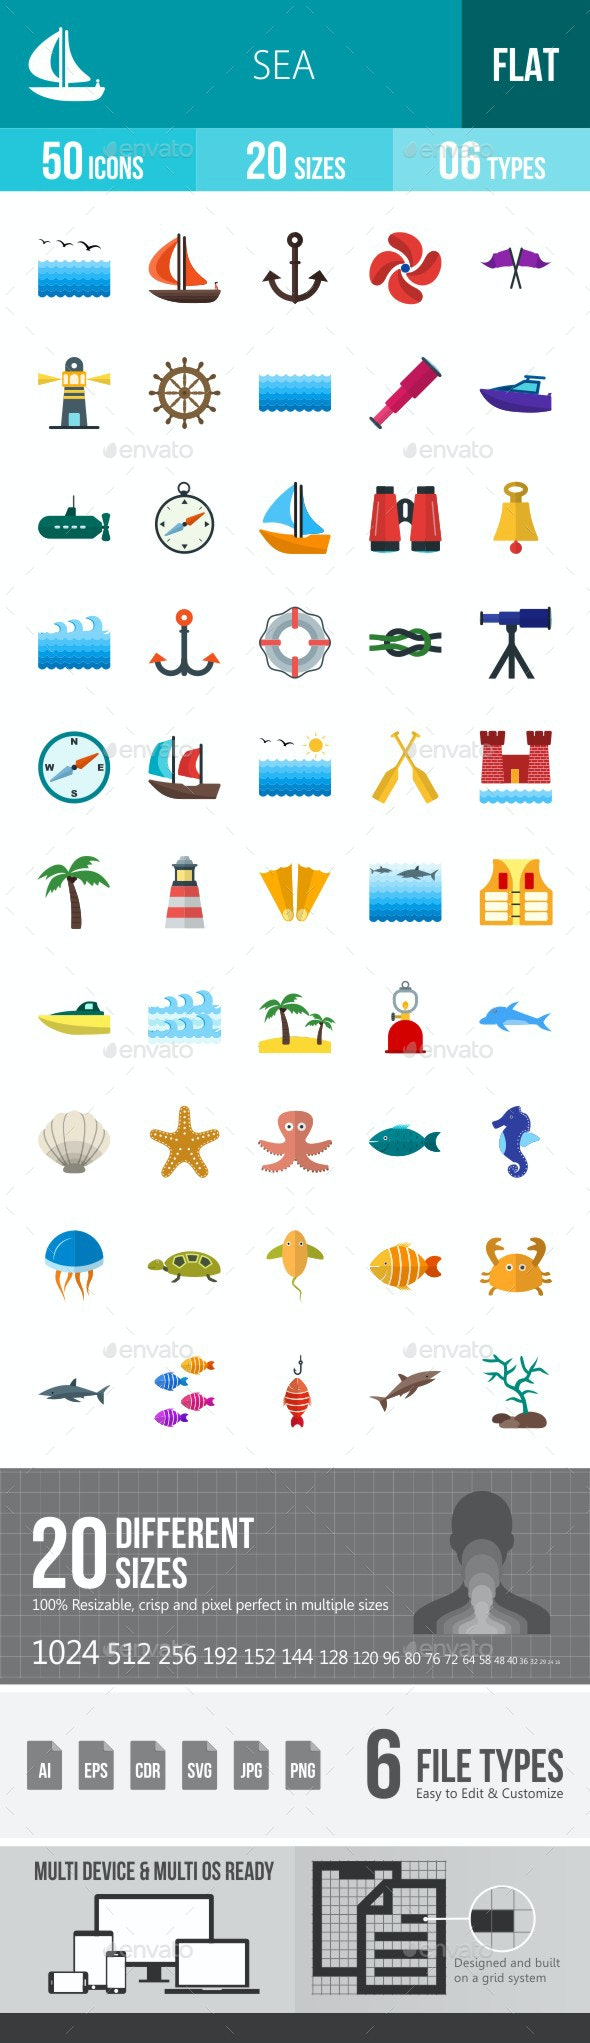 Sea Flat Multicolor Icons - Icons